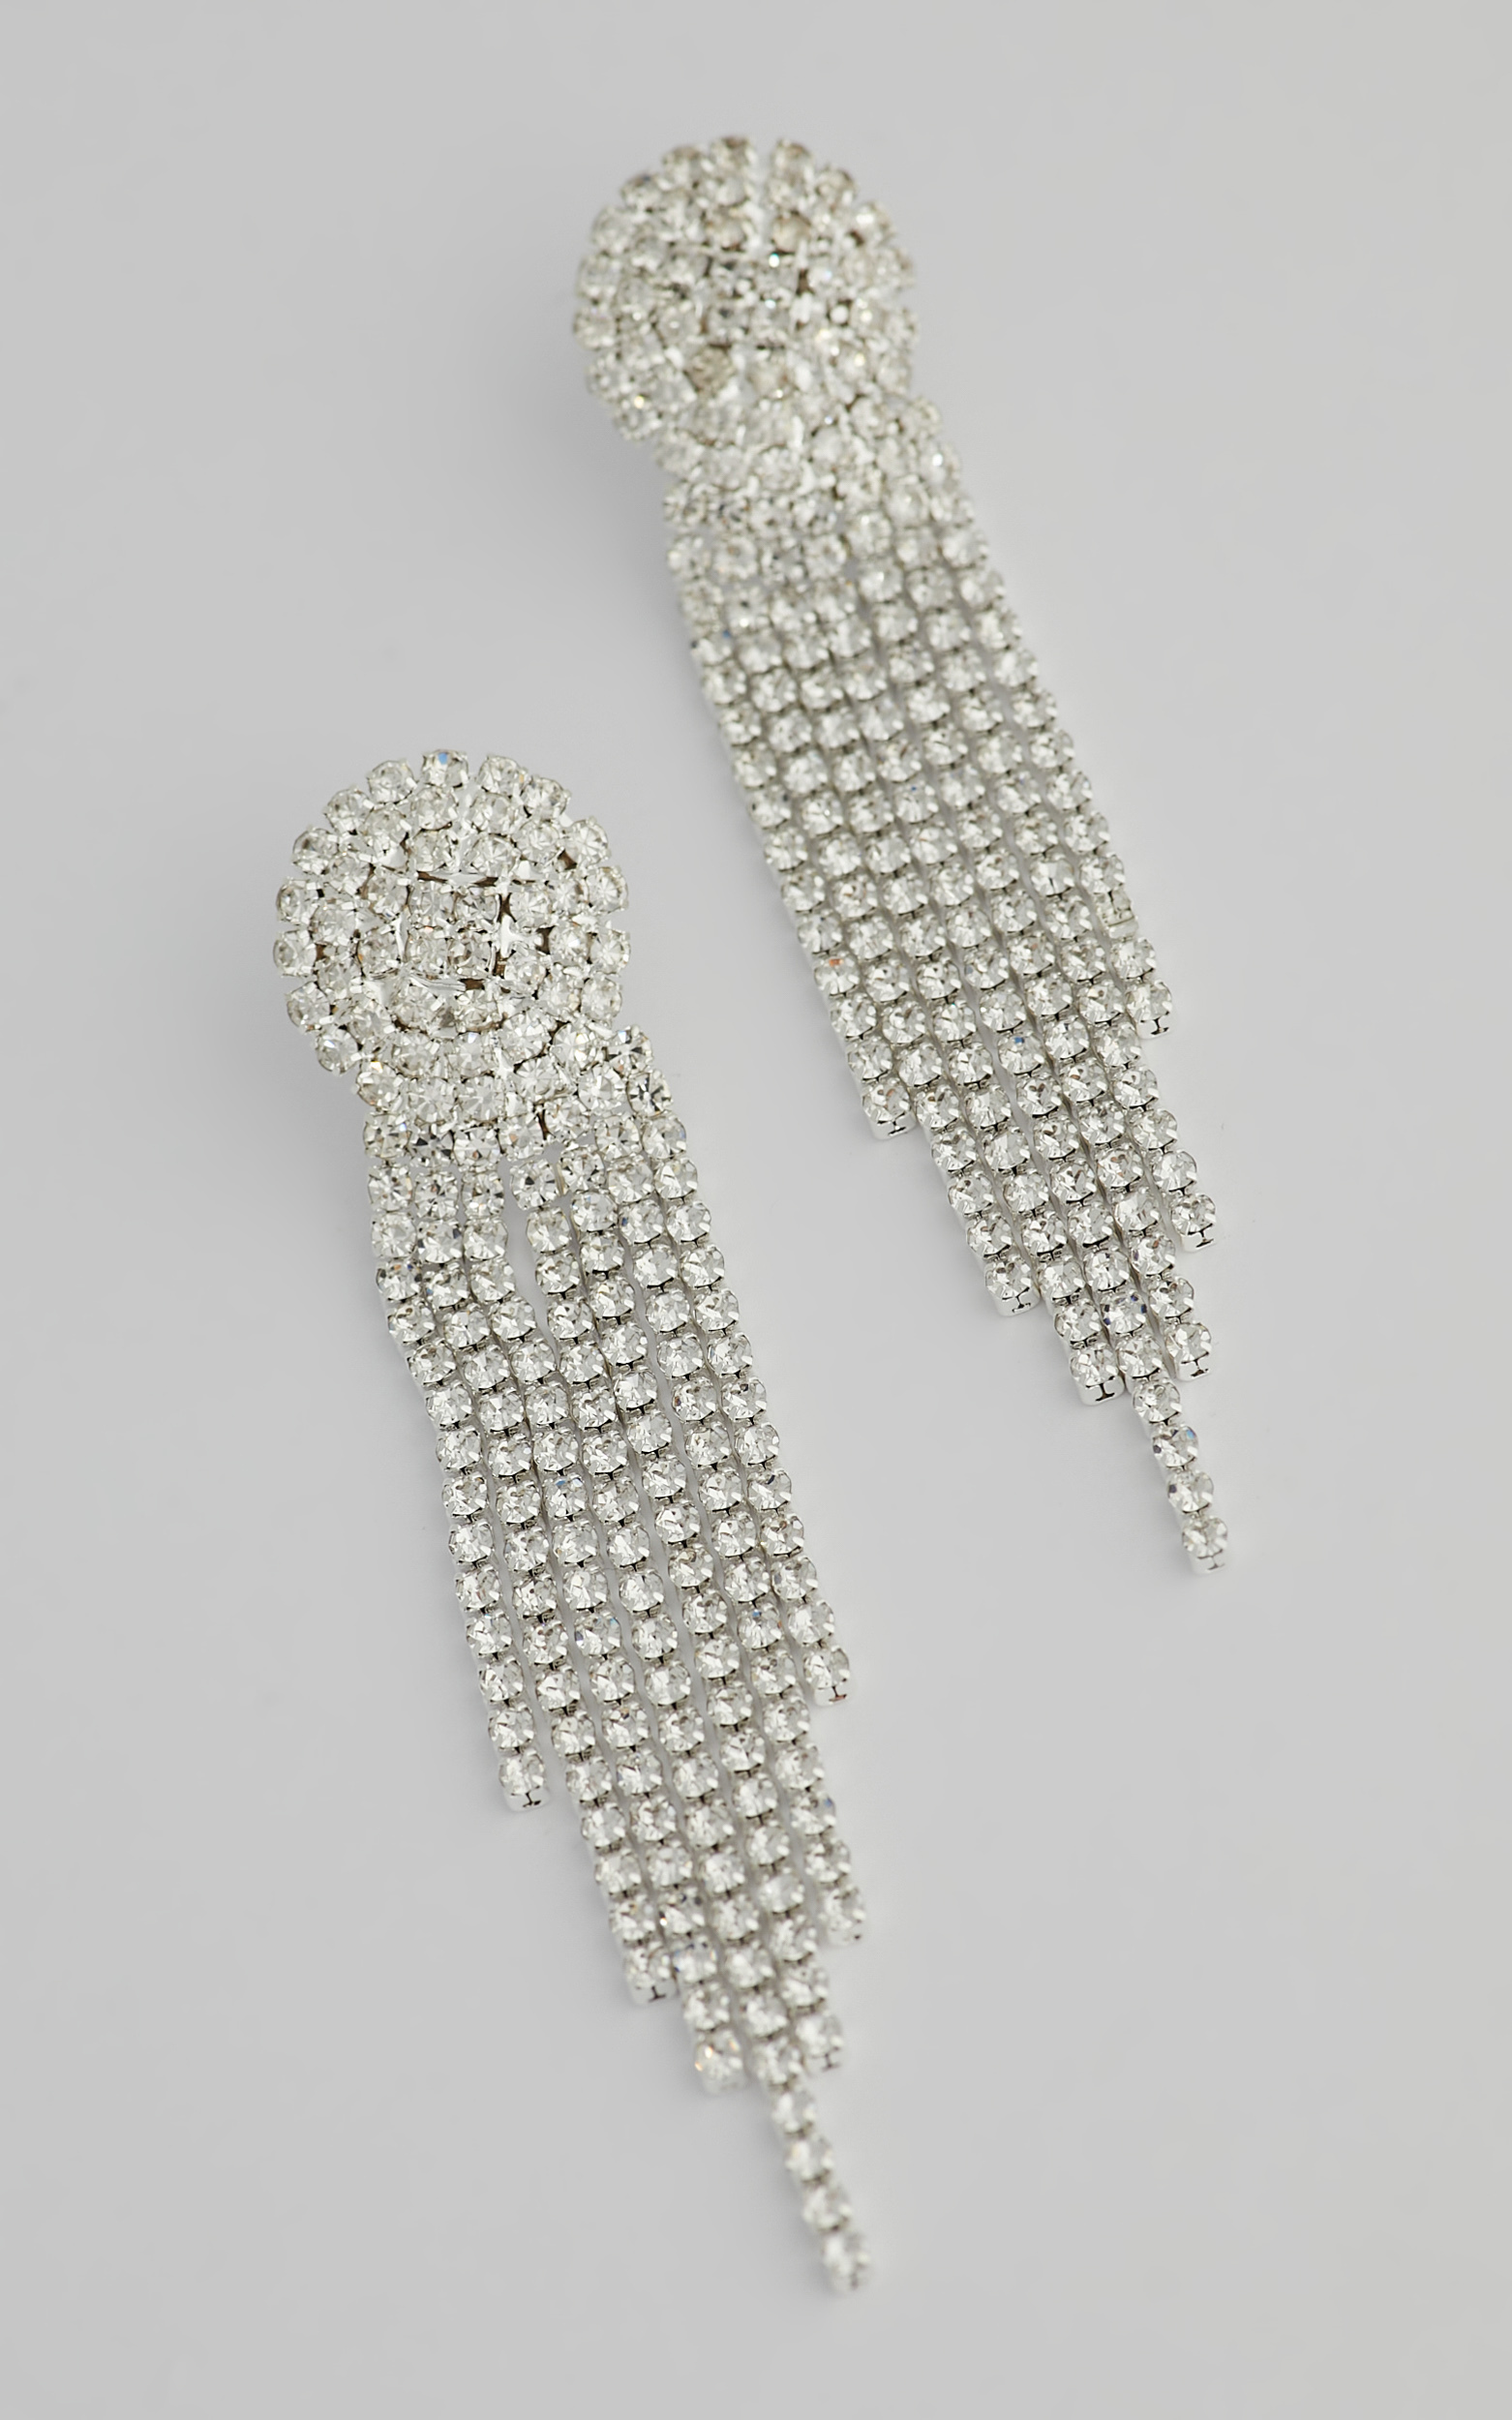 Trinny Drop Earrings in Silver Diamante - NoSize, SLV1, hi-res image number null